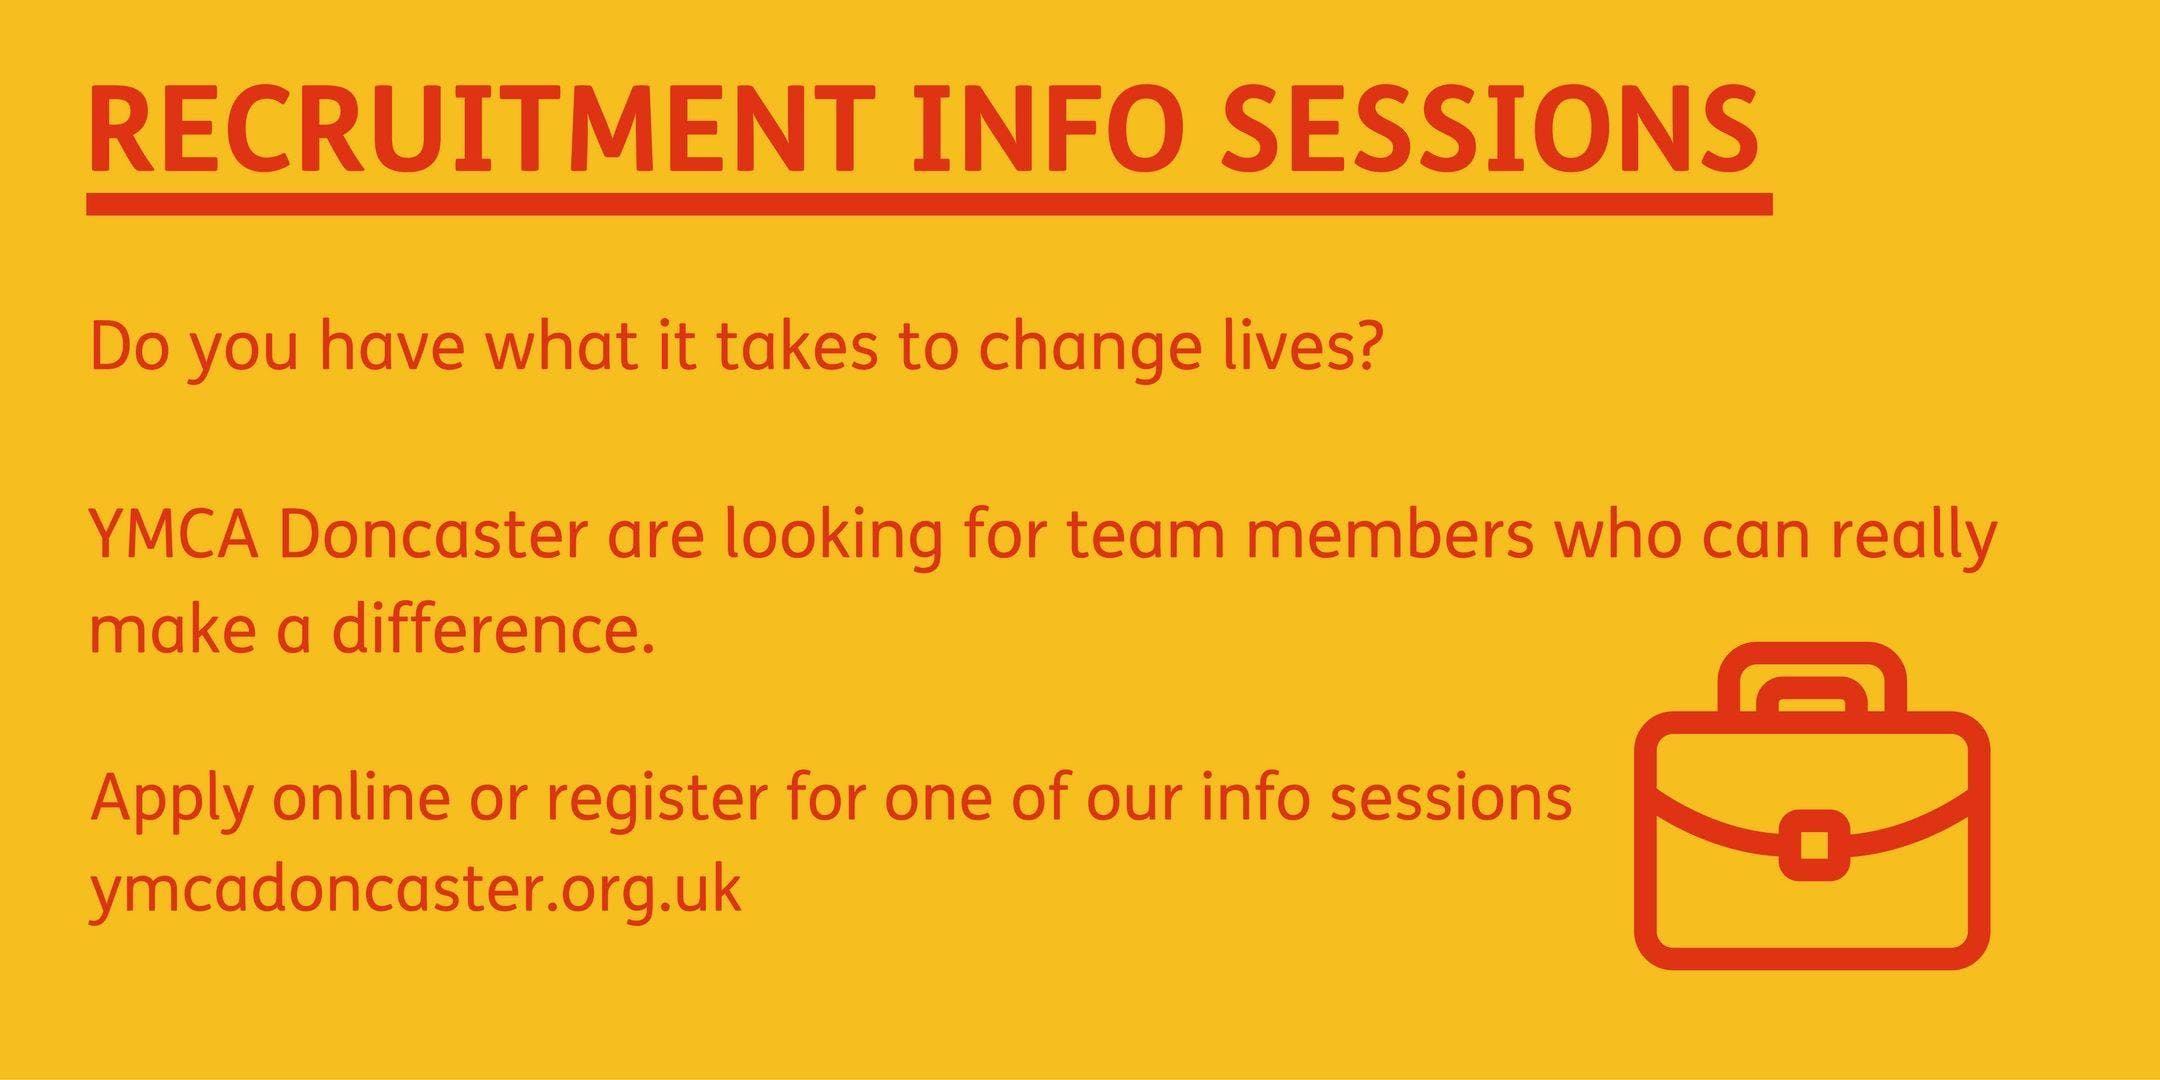 Recruitment Info Session - 4pm on Tuesday 24th September 2019